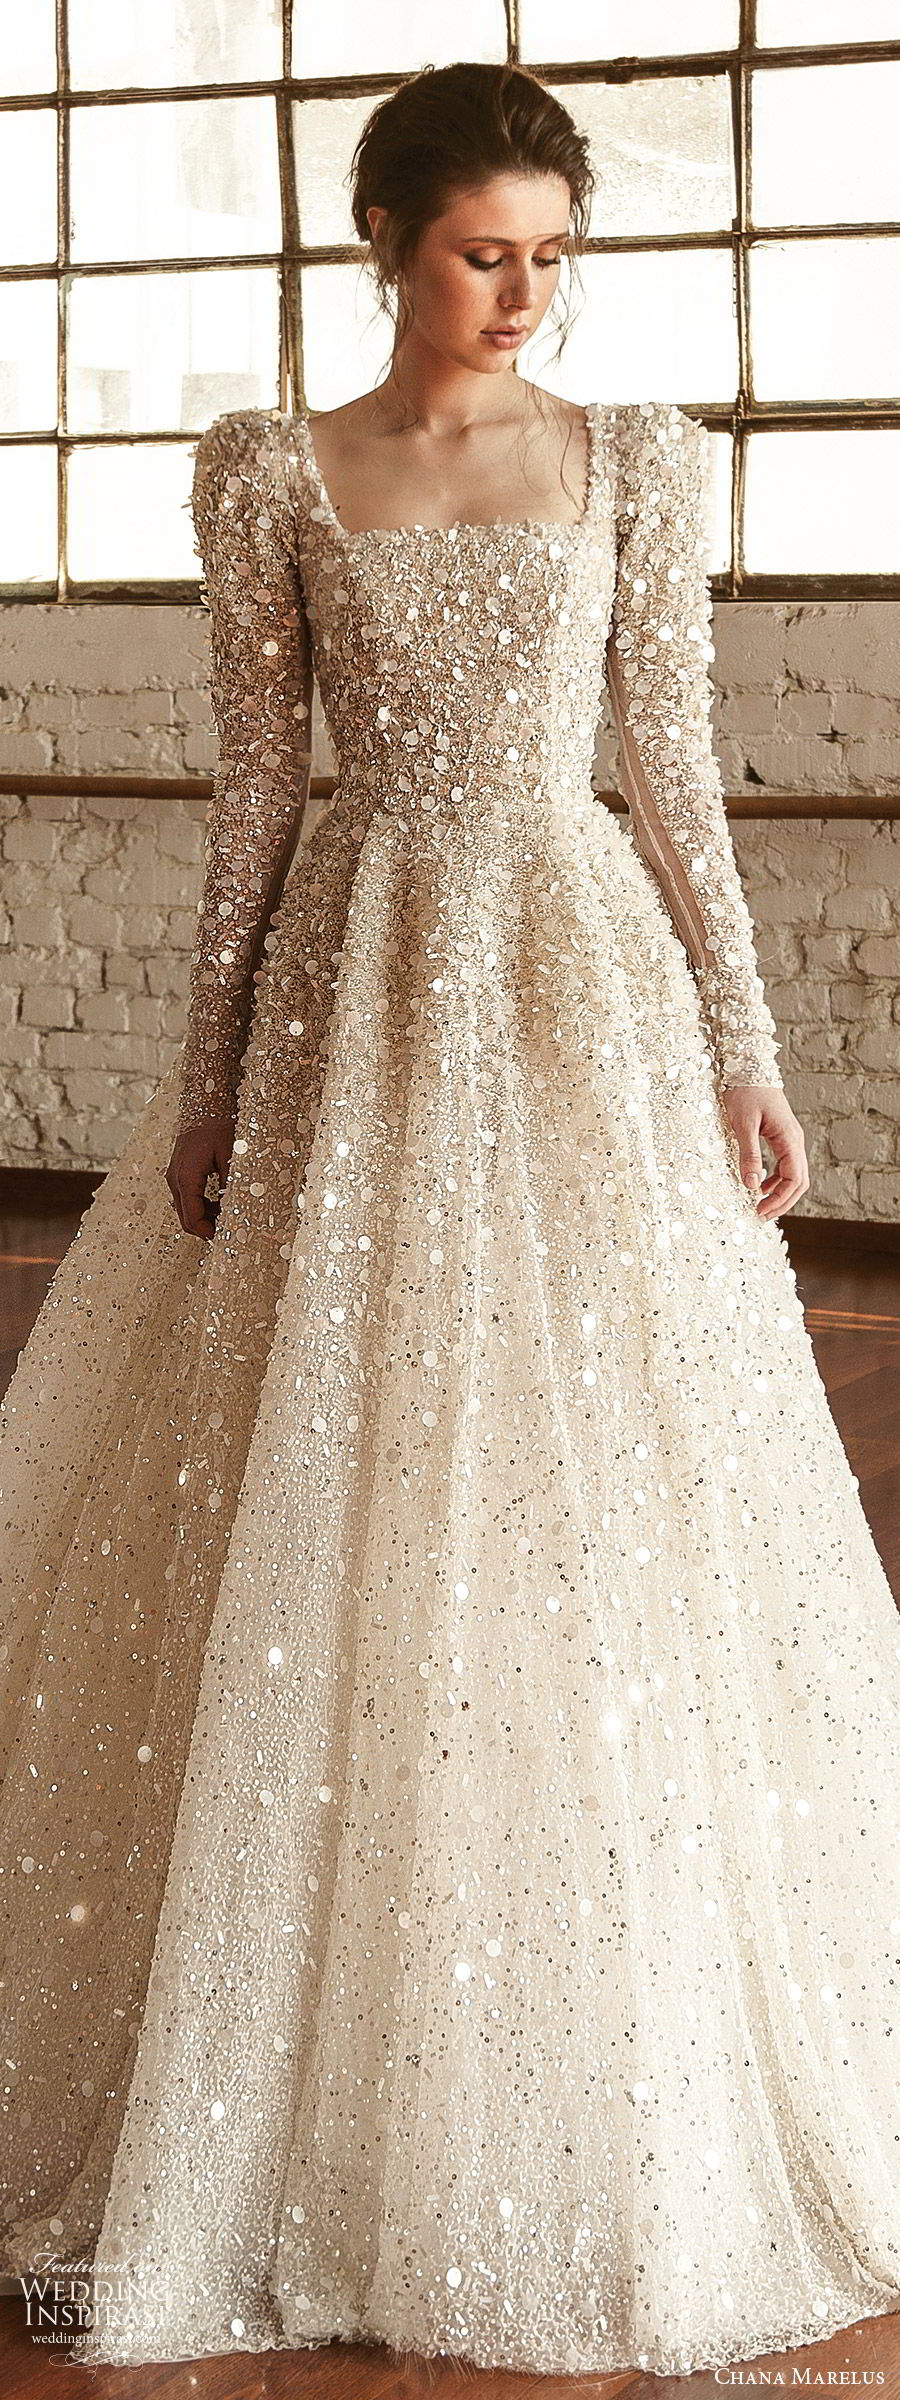 chana-marelus-fall-2019-bridal-long-puff-sleeves-square-straigh-across-neckline-fully-embellished-a-line-ball-gown-wedding-dress-1-glitzy-princess-romantic-cathedral-train-lv.jpg